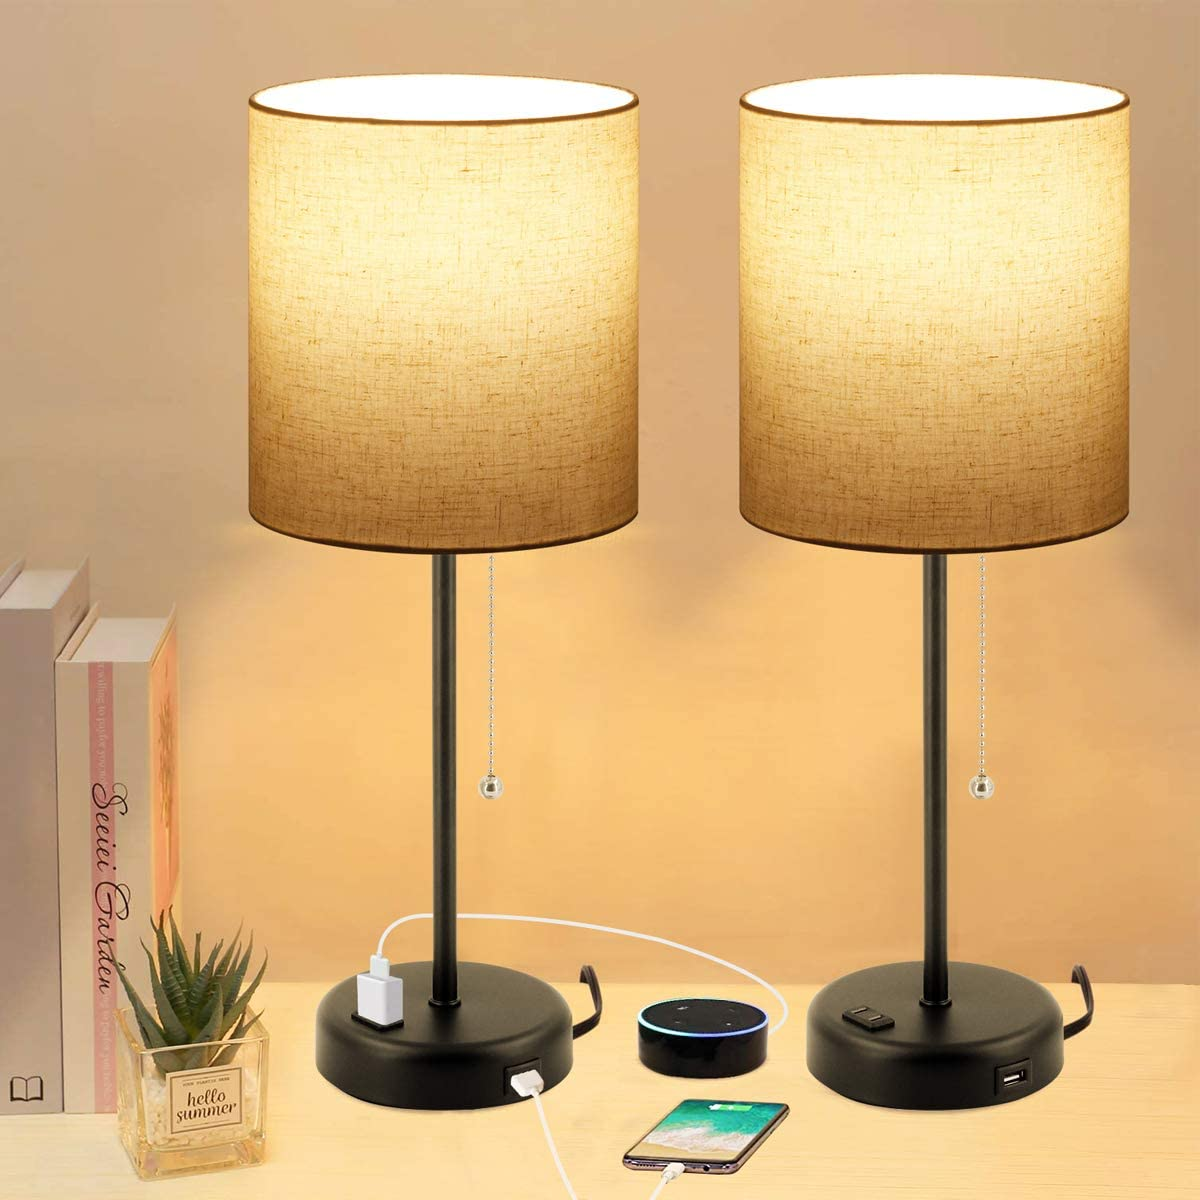 Bargain sale Table Lamps Set of 2 Direct stock discount for Bedside USB Port with Nightstand